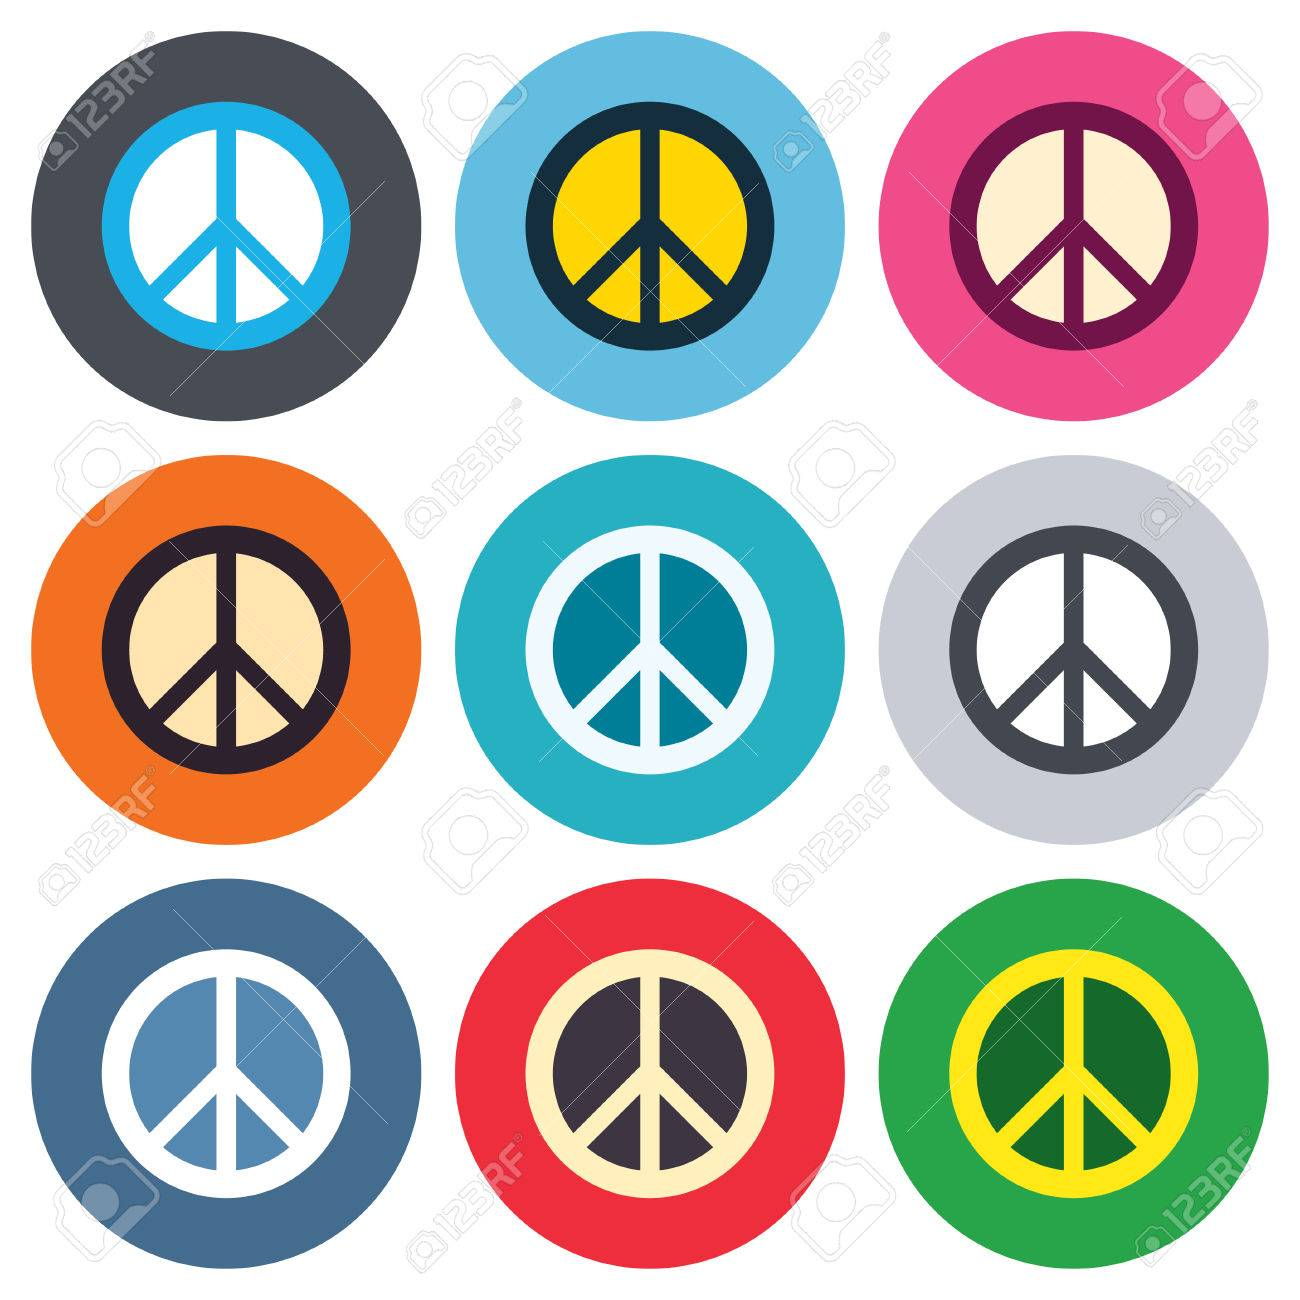 Peace sign icon  Hope symbol  Antiwar sign  Colored round buttons